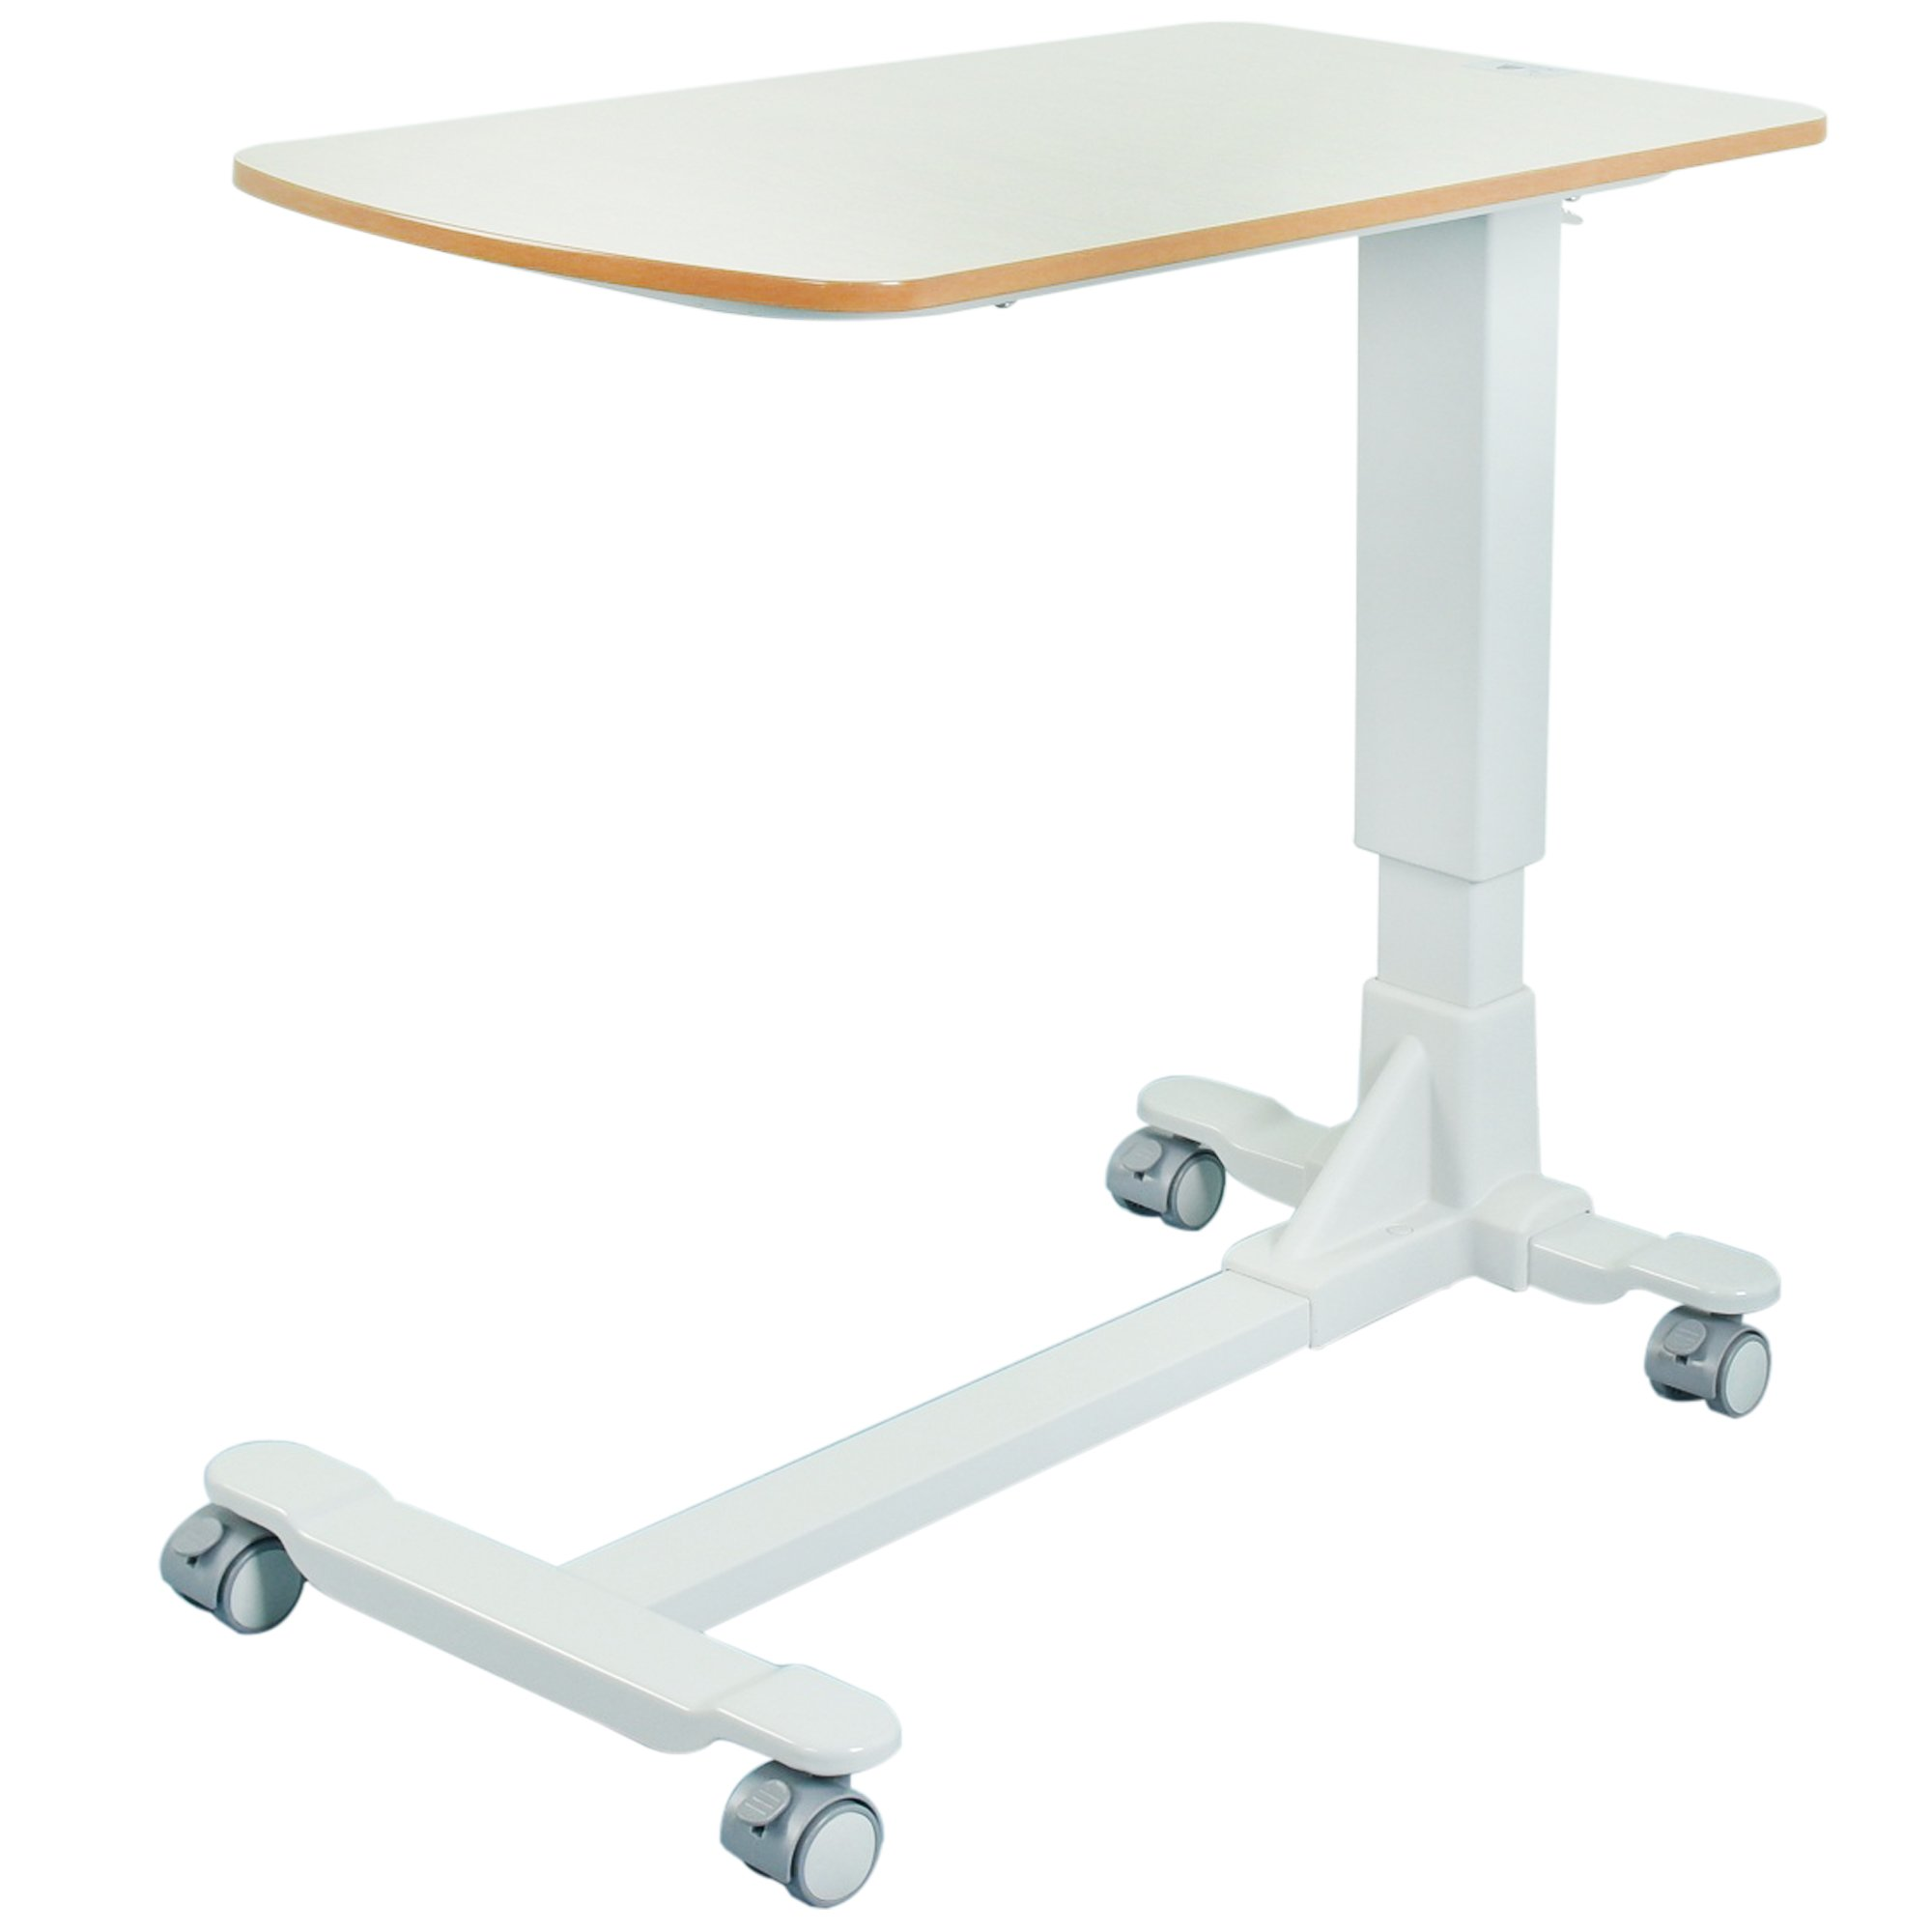 Medical Adjustable Bedside Table with Wheels